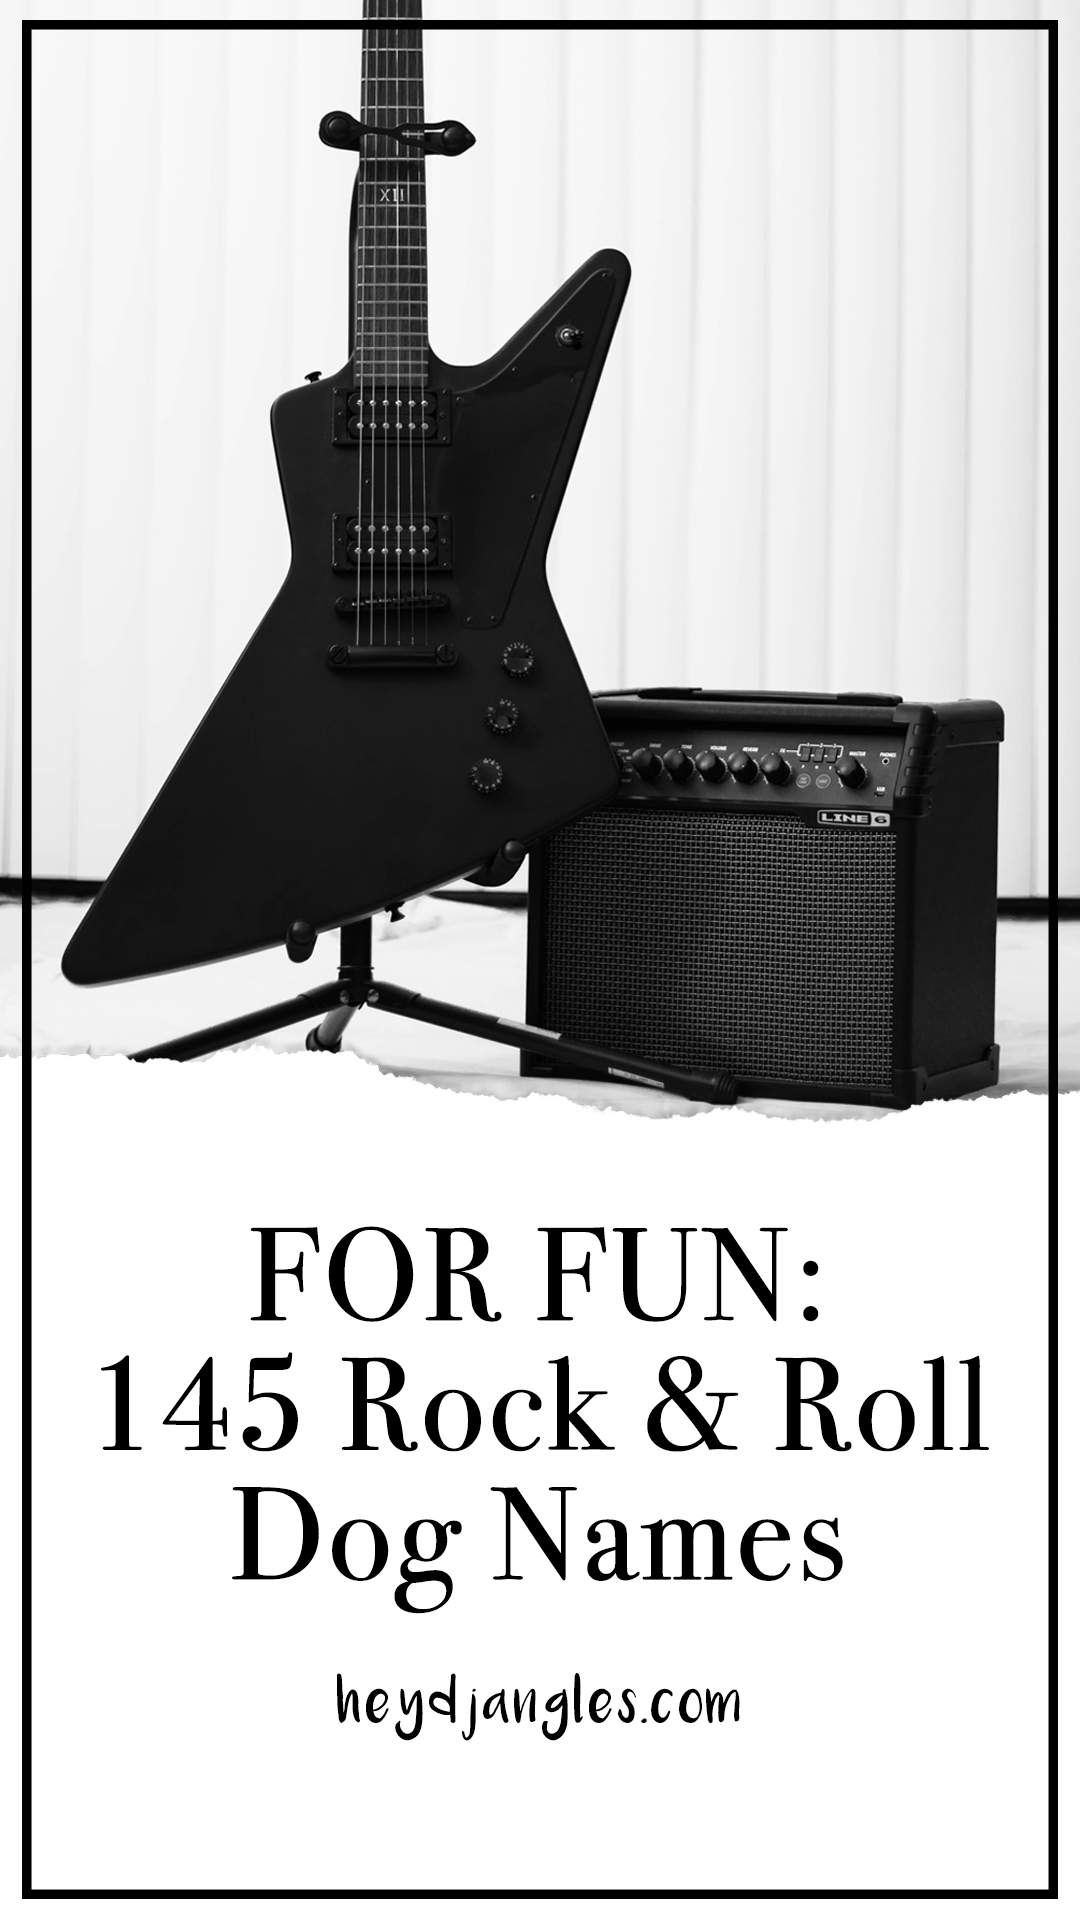 FOR FUN: 145 Rock and Roll Dog Names – heydjangles.com – dog name ideas, rocker dog names, rock star dog, dog names inspired by music, male and female singer dog names, unique dog names, cool dogs.